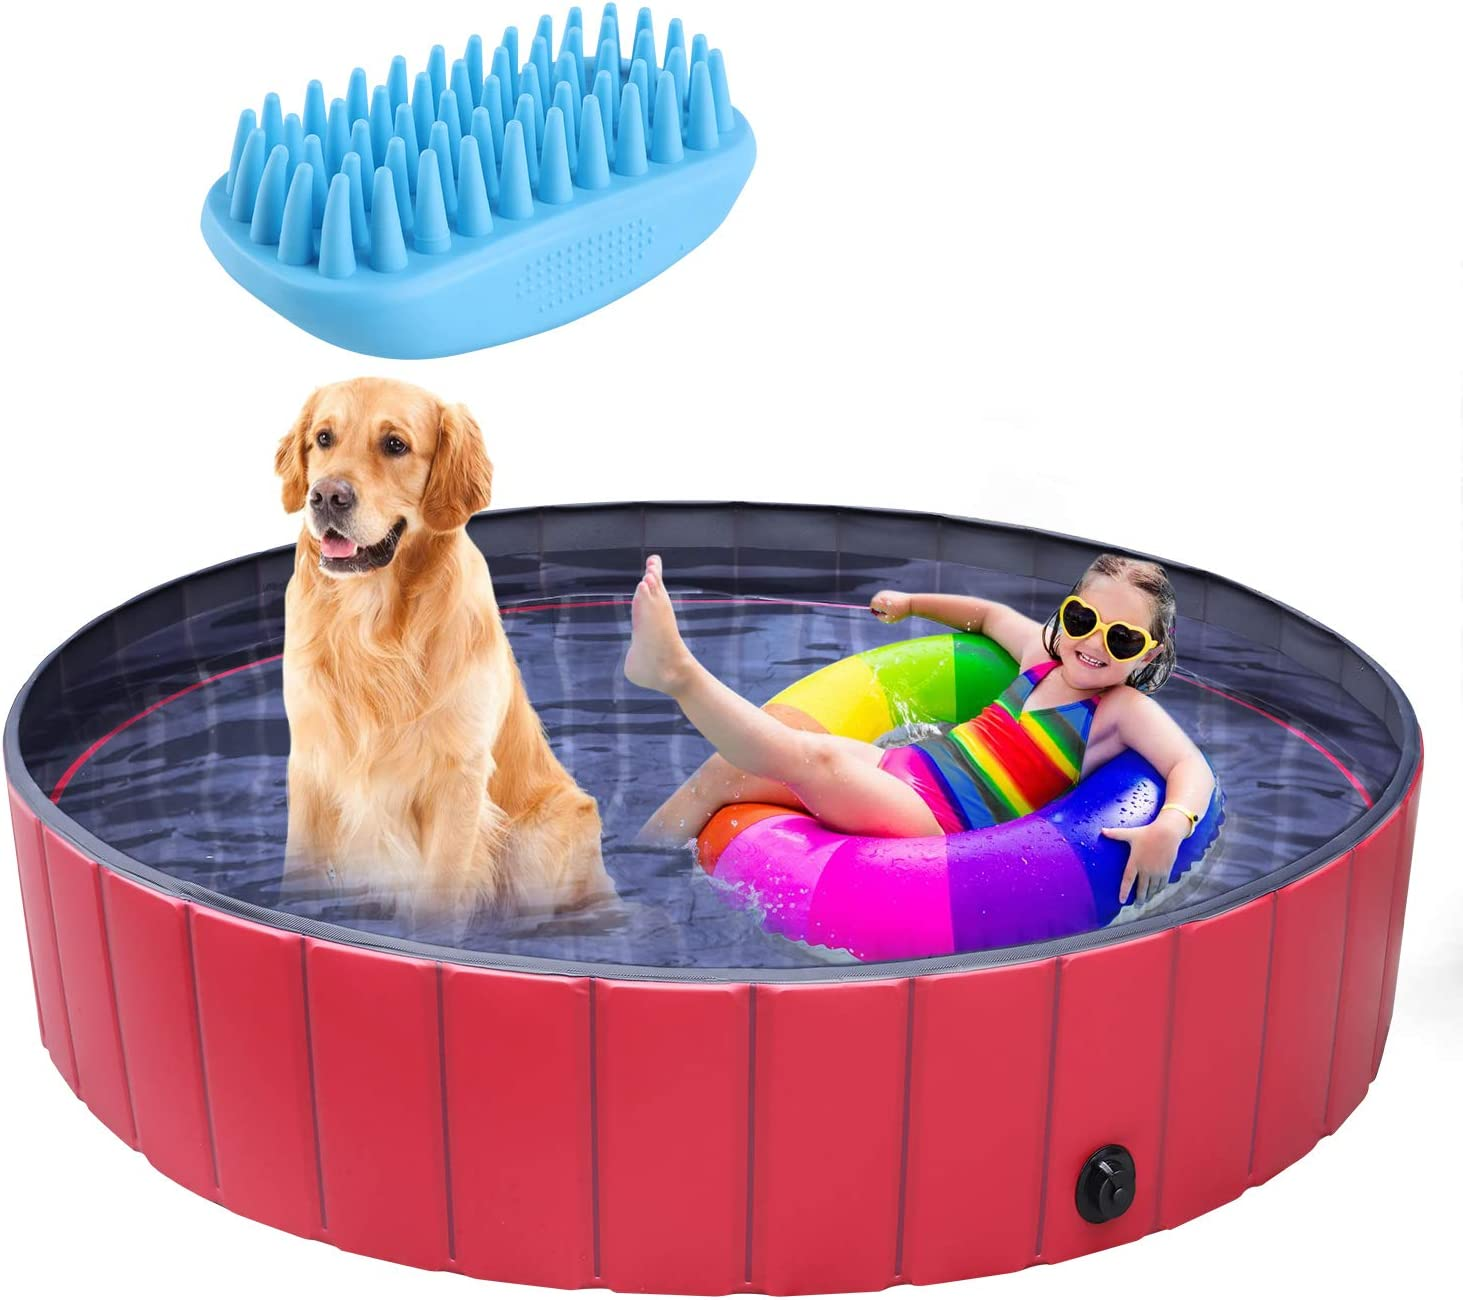 Pedy Dog Swimming Pool Collapsible Pet Bath Pool Foldable Bathing Tub Kiddie Pool For Dogs Cats And Kids 63 X 11 8 In Amazon Ca Pet Supplies